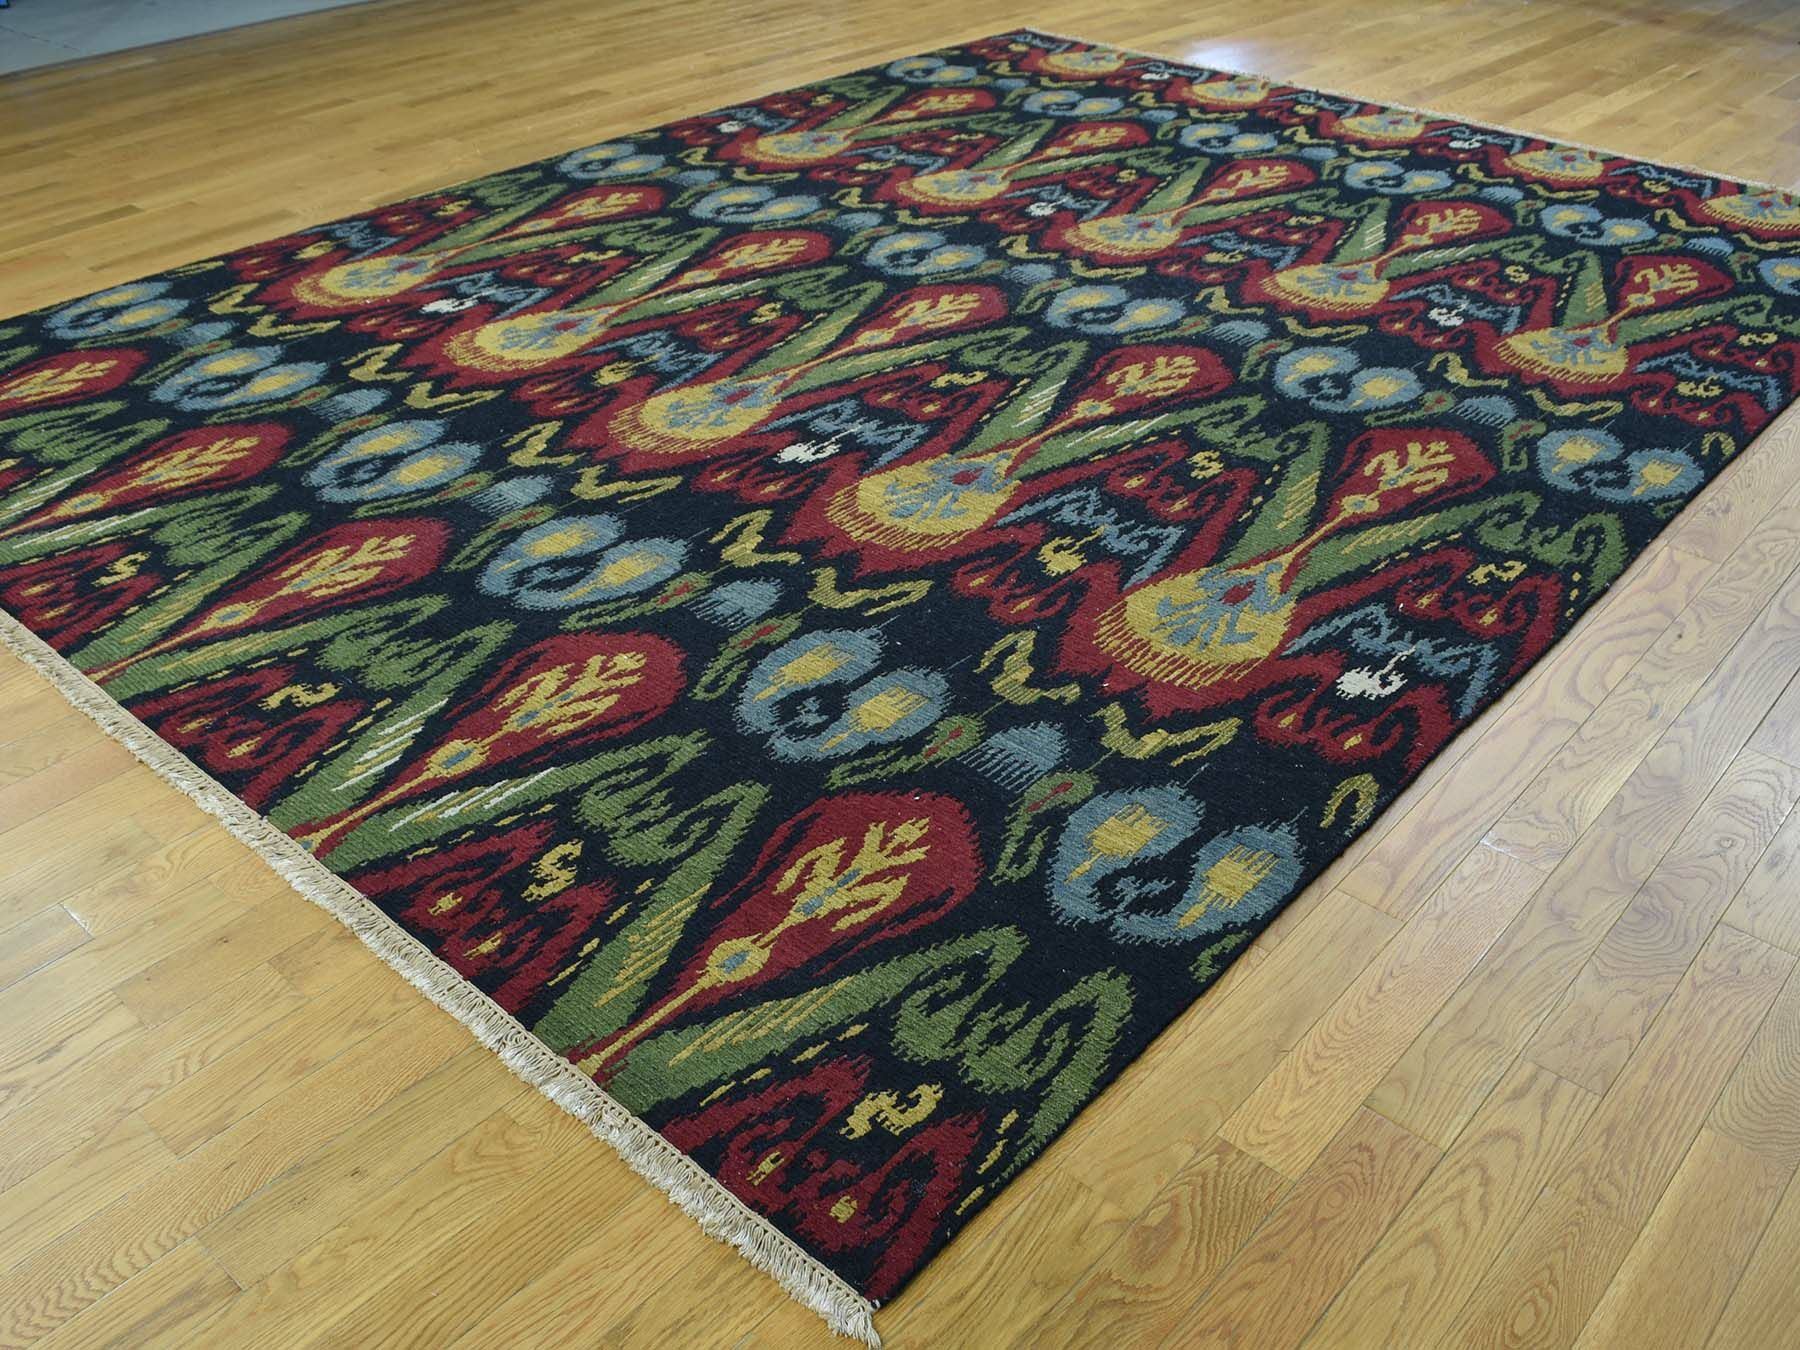 One-of-a-Kind Brieley Ikat Design Soumak Double Weft Handwoven Black Wool Area Rug